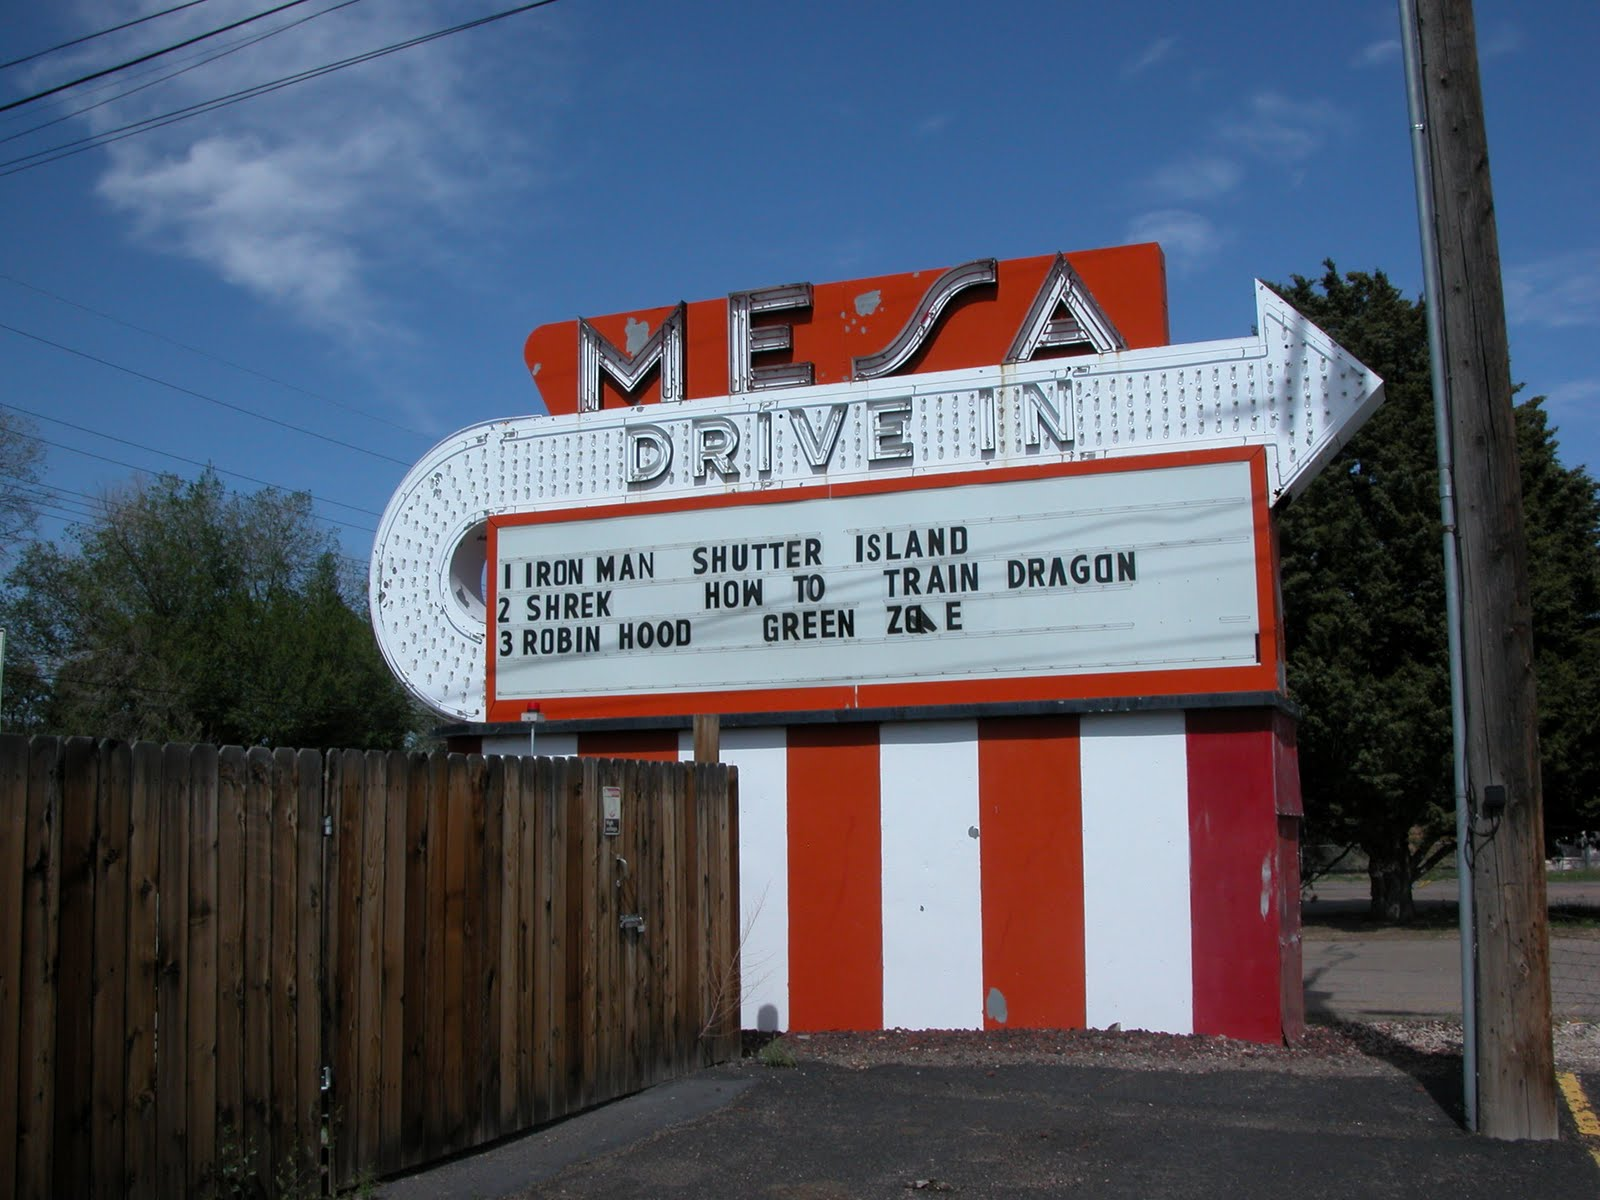 Drive in theater montrose co